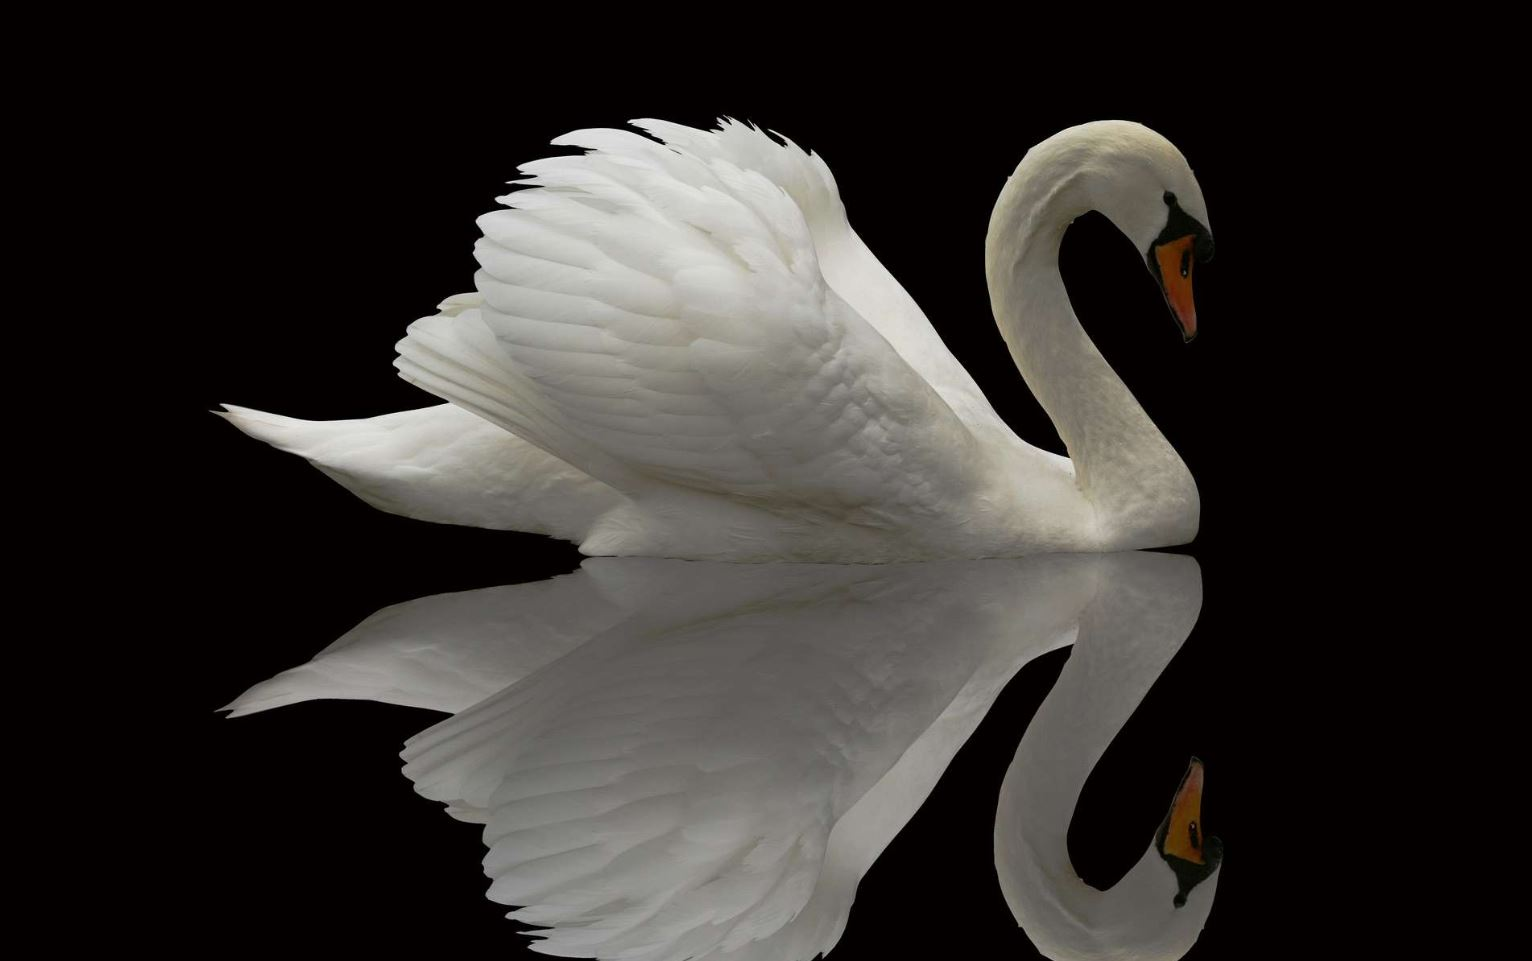 A swan should see herself as the beauty that she is. Photo via hdwallsource.com.